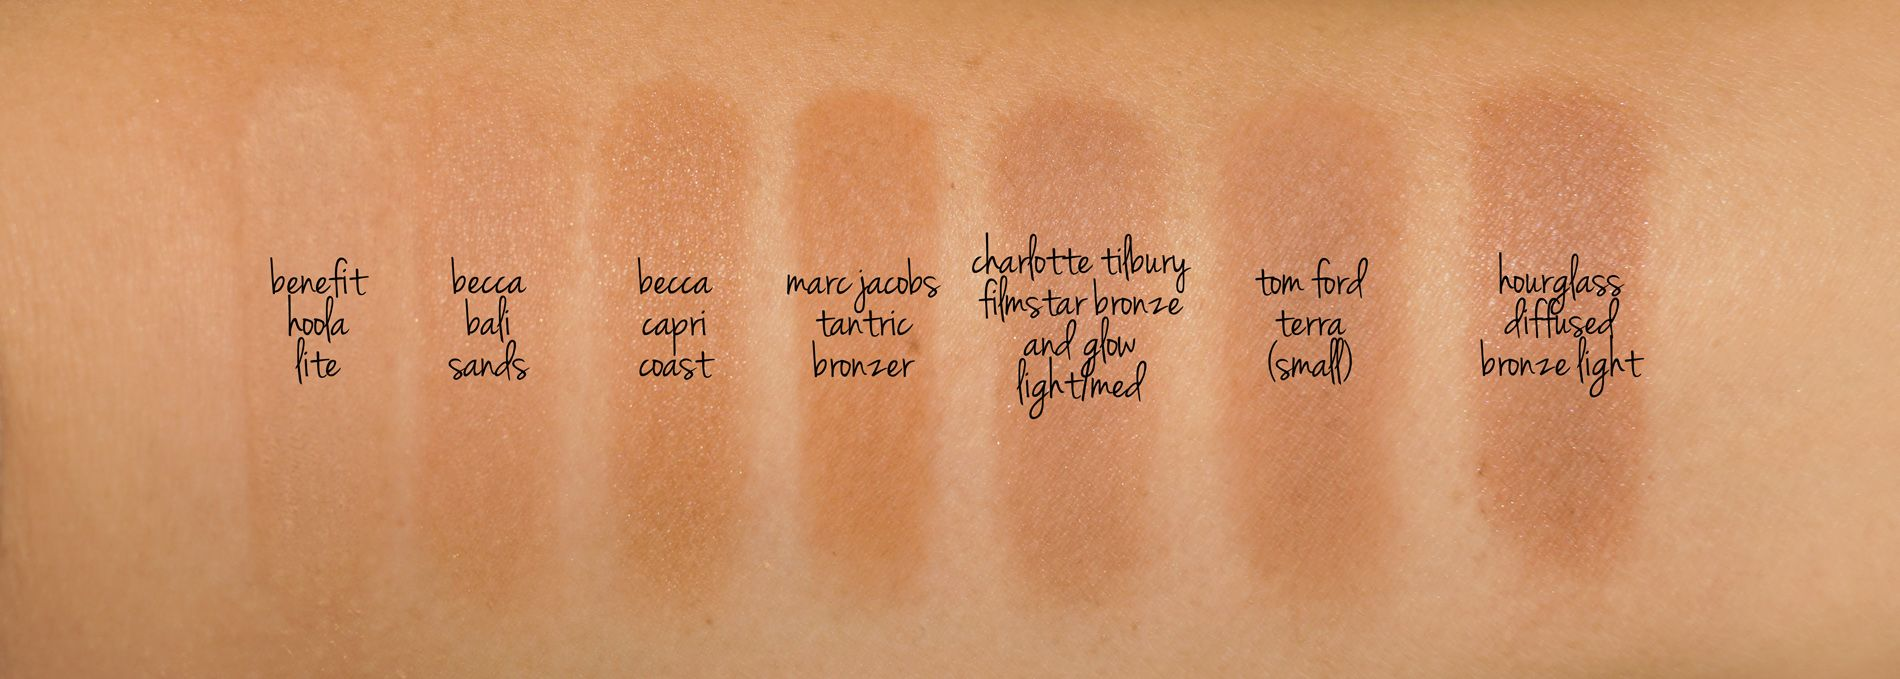 Bronzer swatch comparison | MAKEUP | Swatches & Shades in 2018 ...